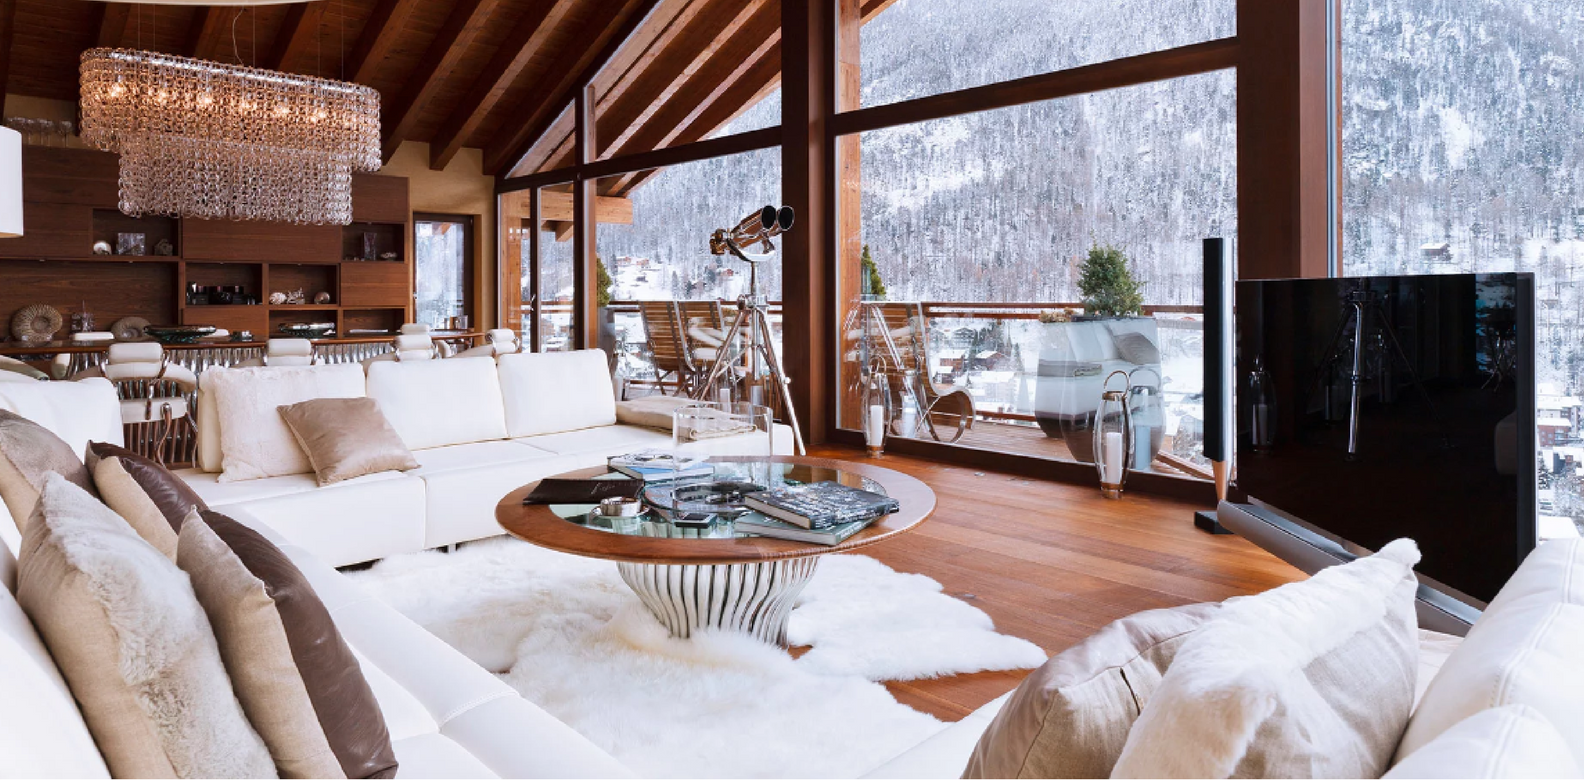 Ski chalet furniture Interior Design Ski Luxury Ski Chalets In Europe To Elevate Your Next Ski Vacation Hong Kong Tatler Luxury Travel Diary Luxury Ski Chalets In Europe To Elevate Your Next Ski Vacation